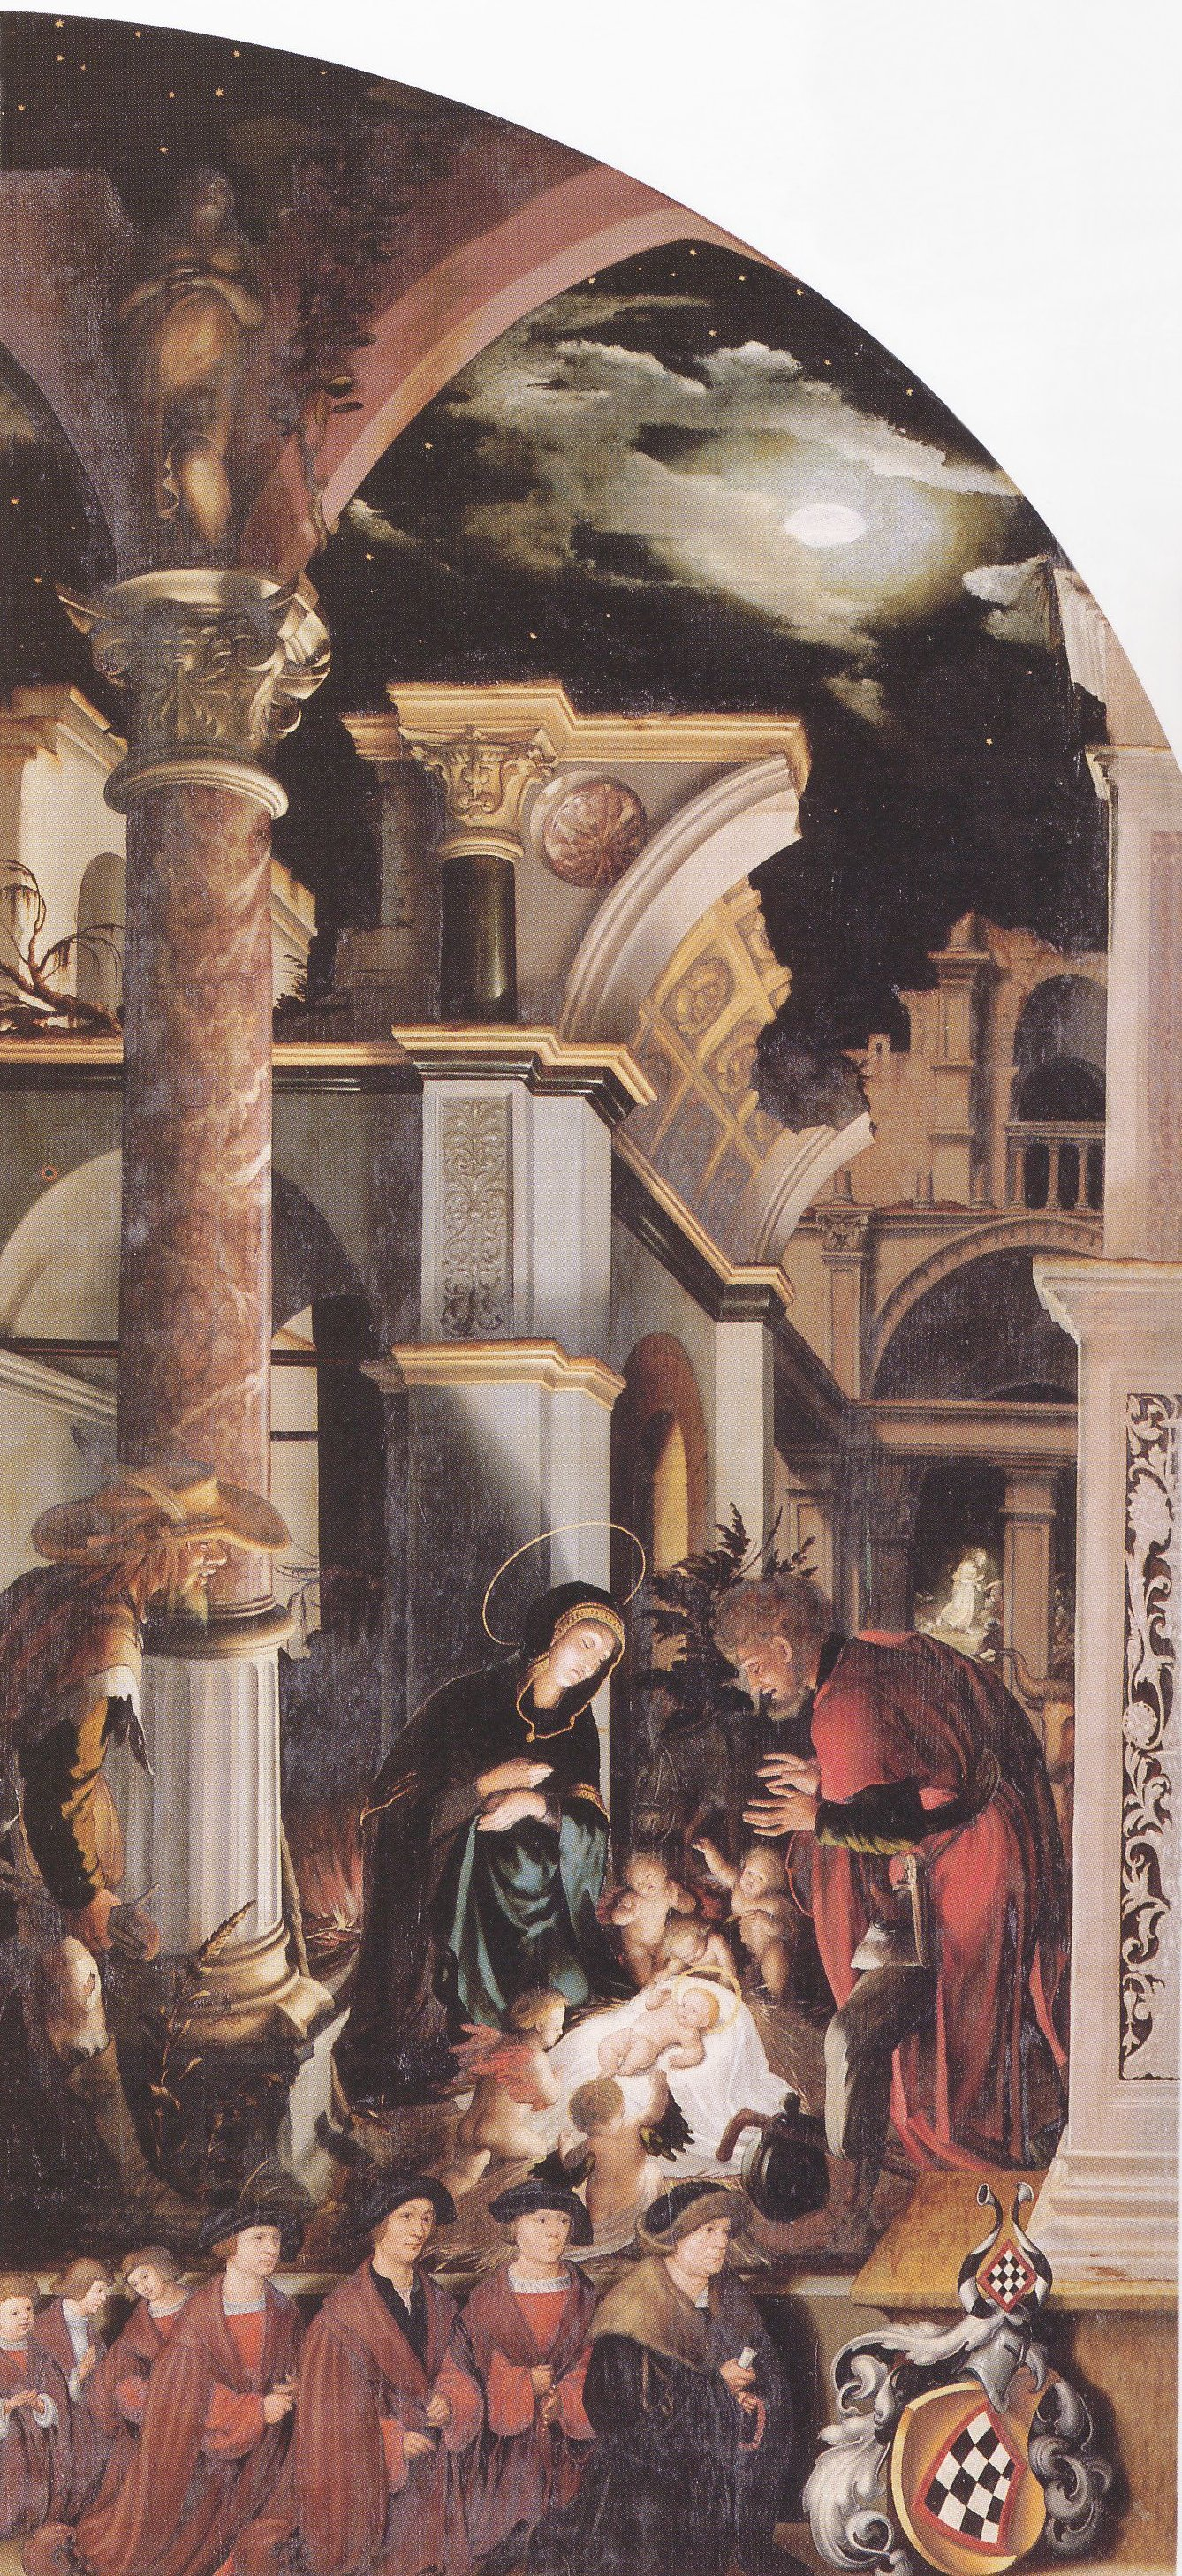 Oberried Altarpiece, right interior wing The Birth of Christ. c.1520